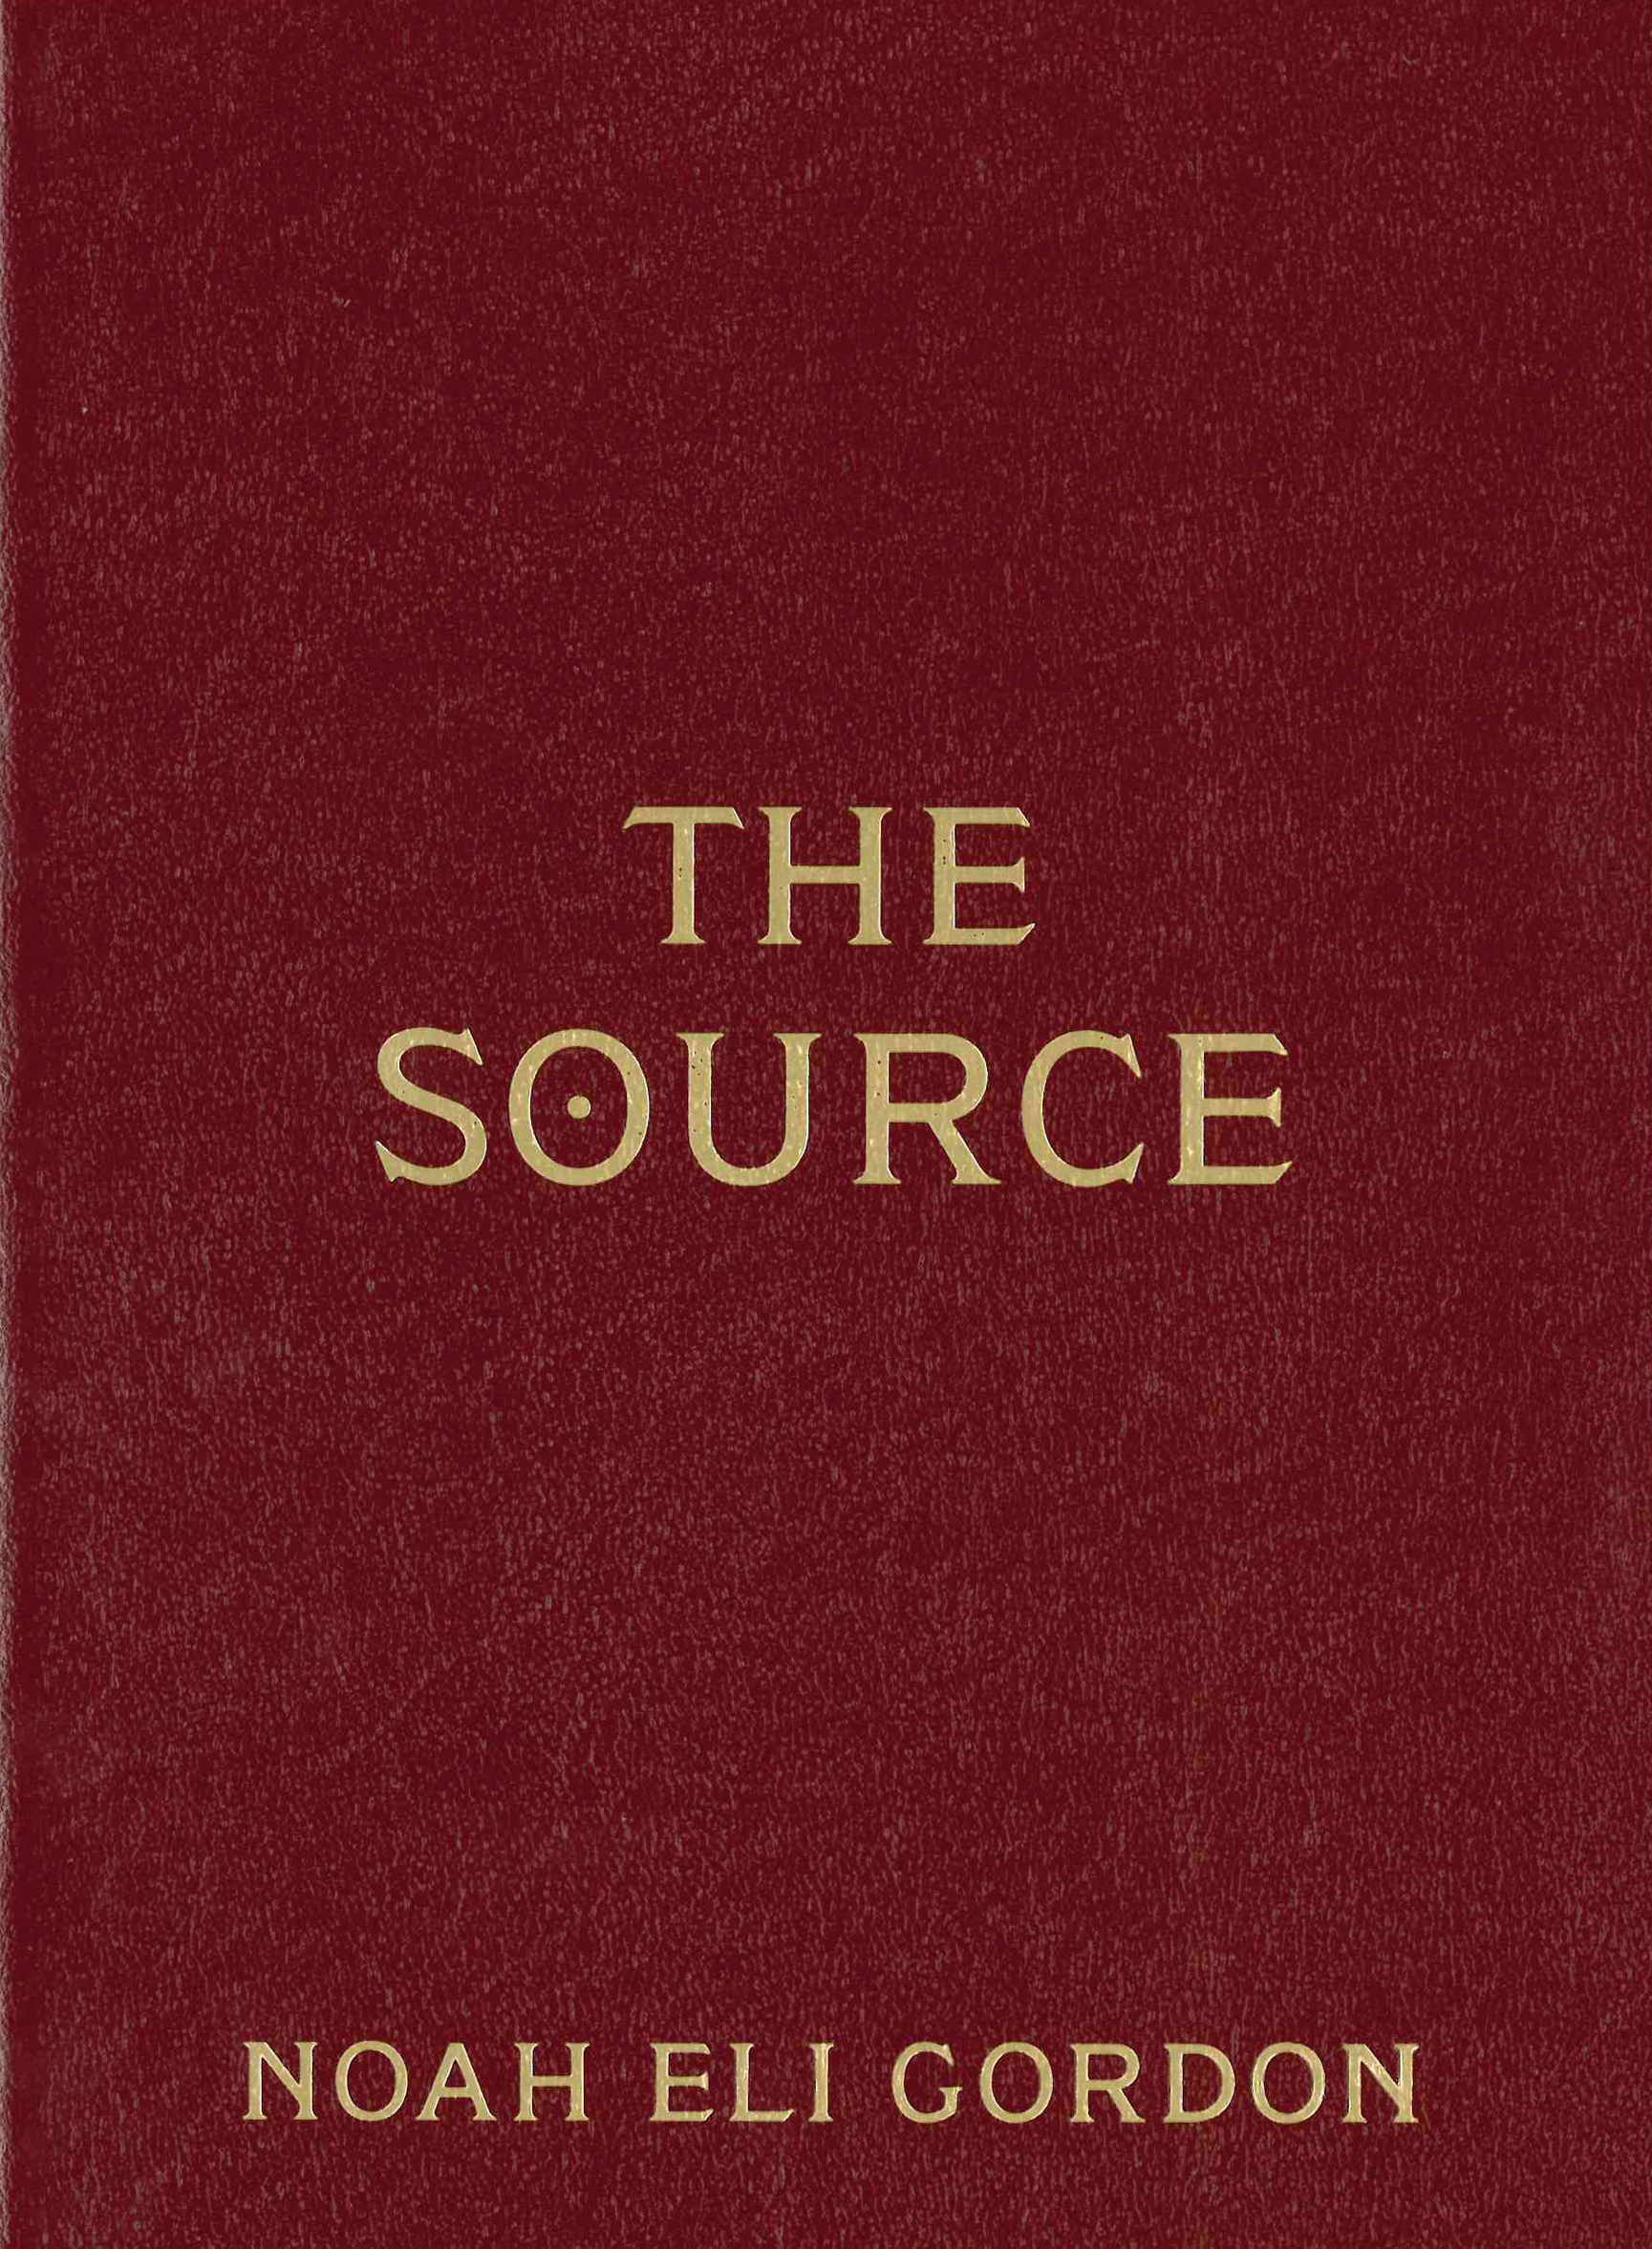 The Source, Noah Eli Gordon